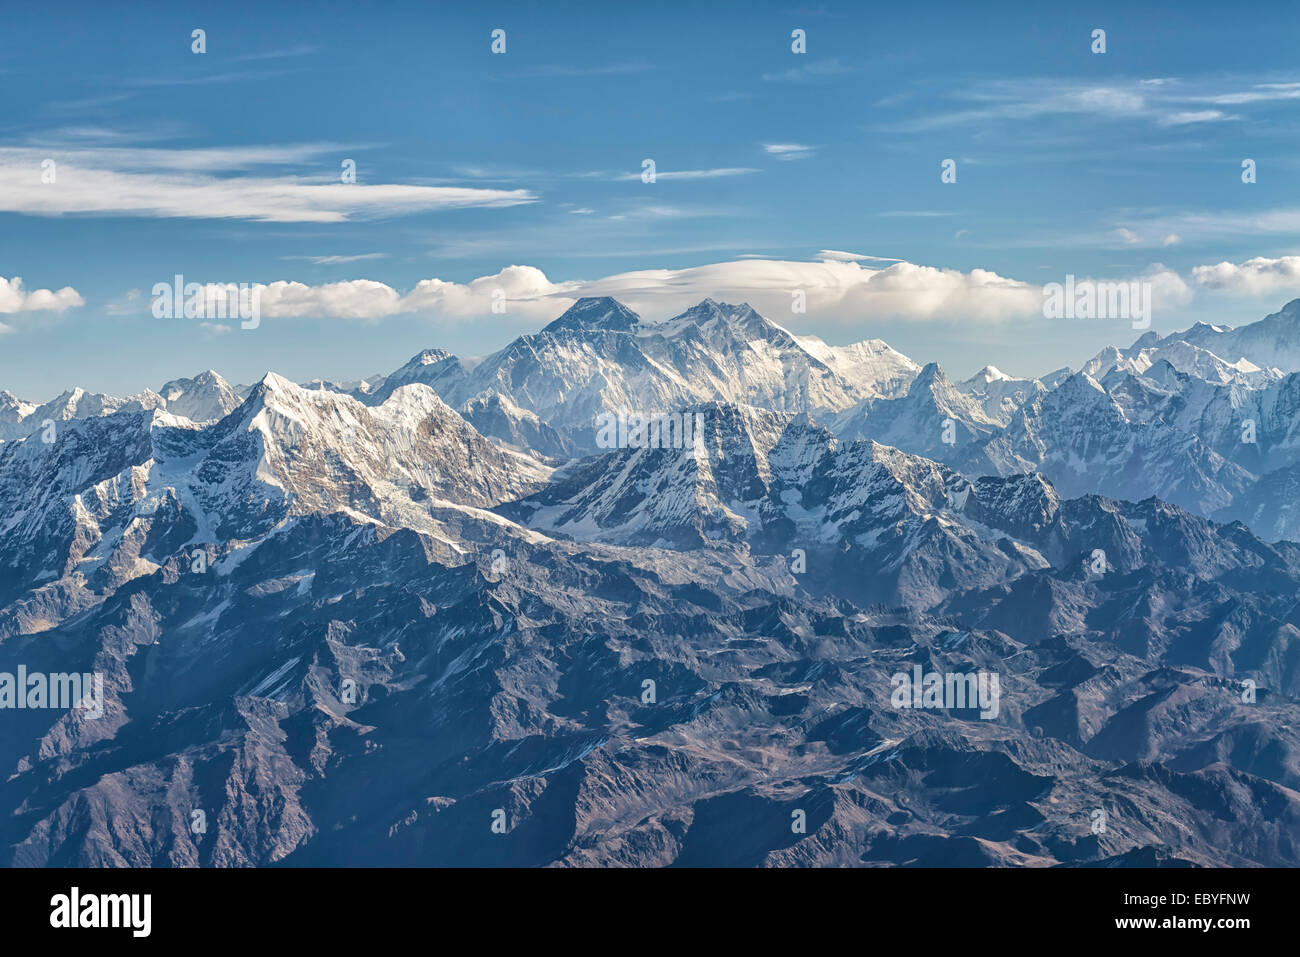 Mount Everest in Mahalangur, Nepal - Stock Image